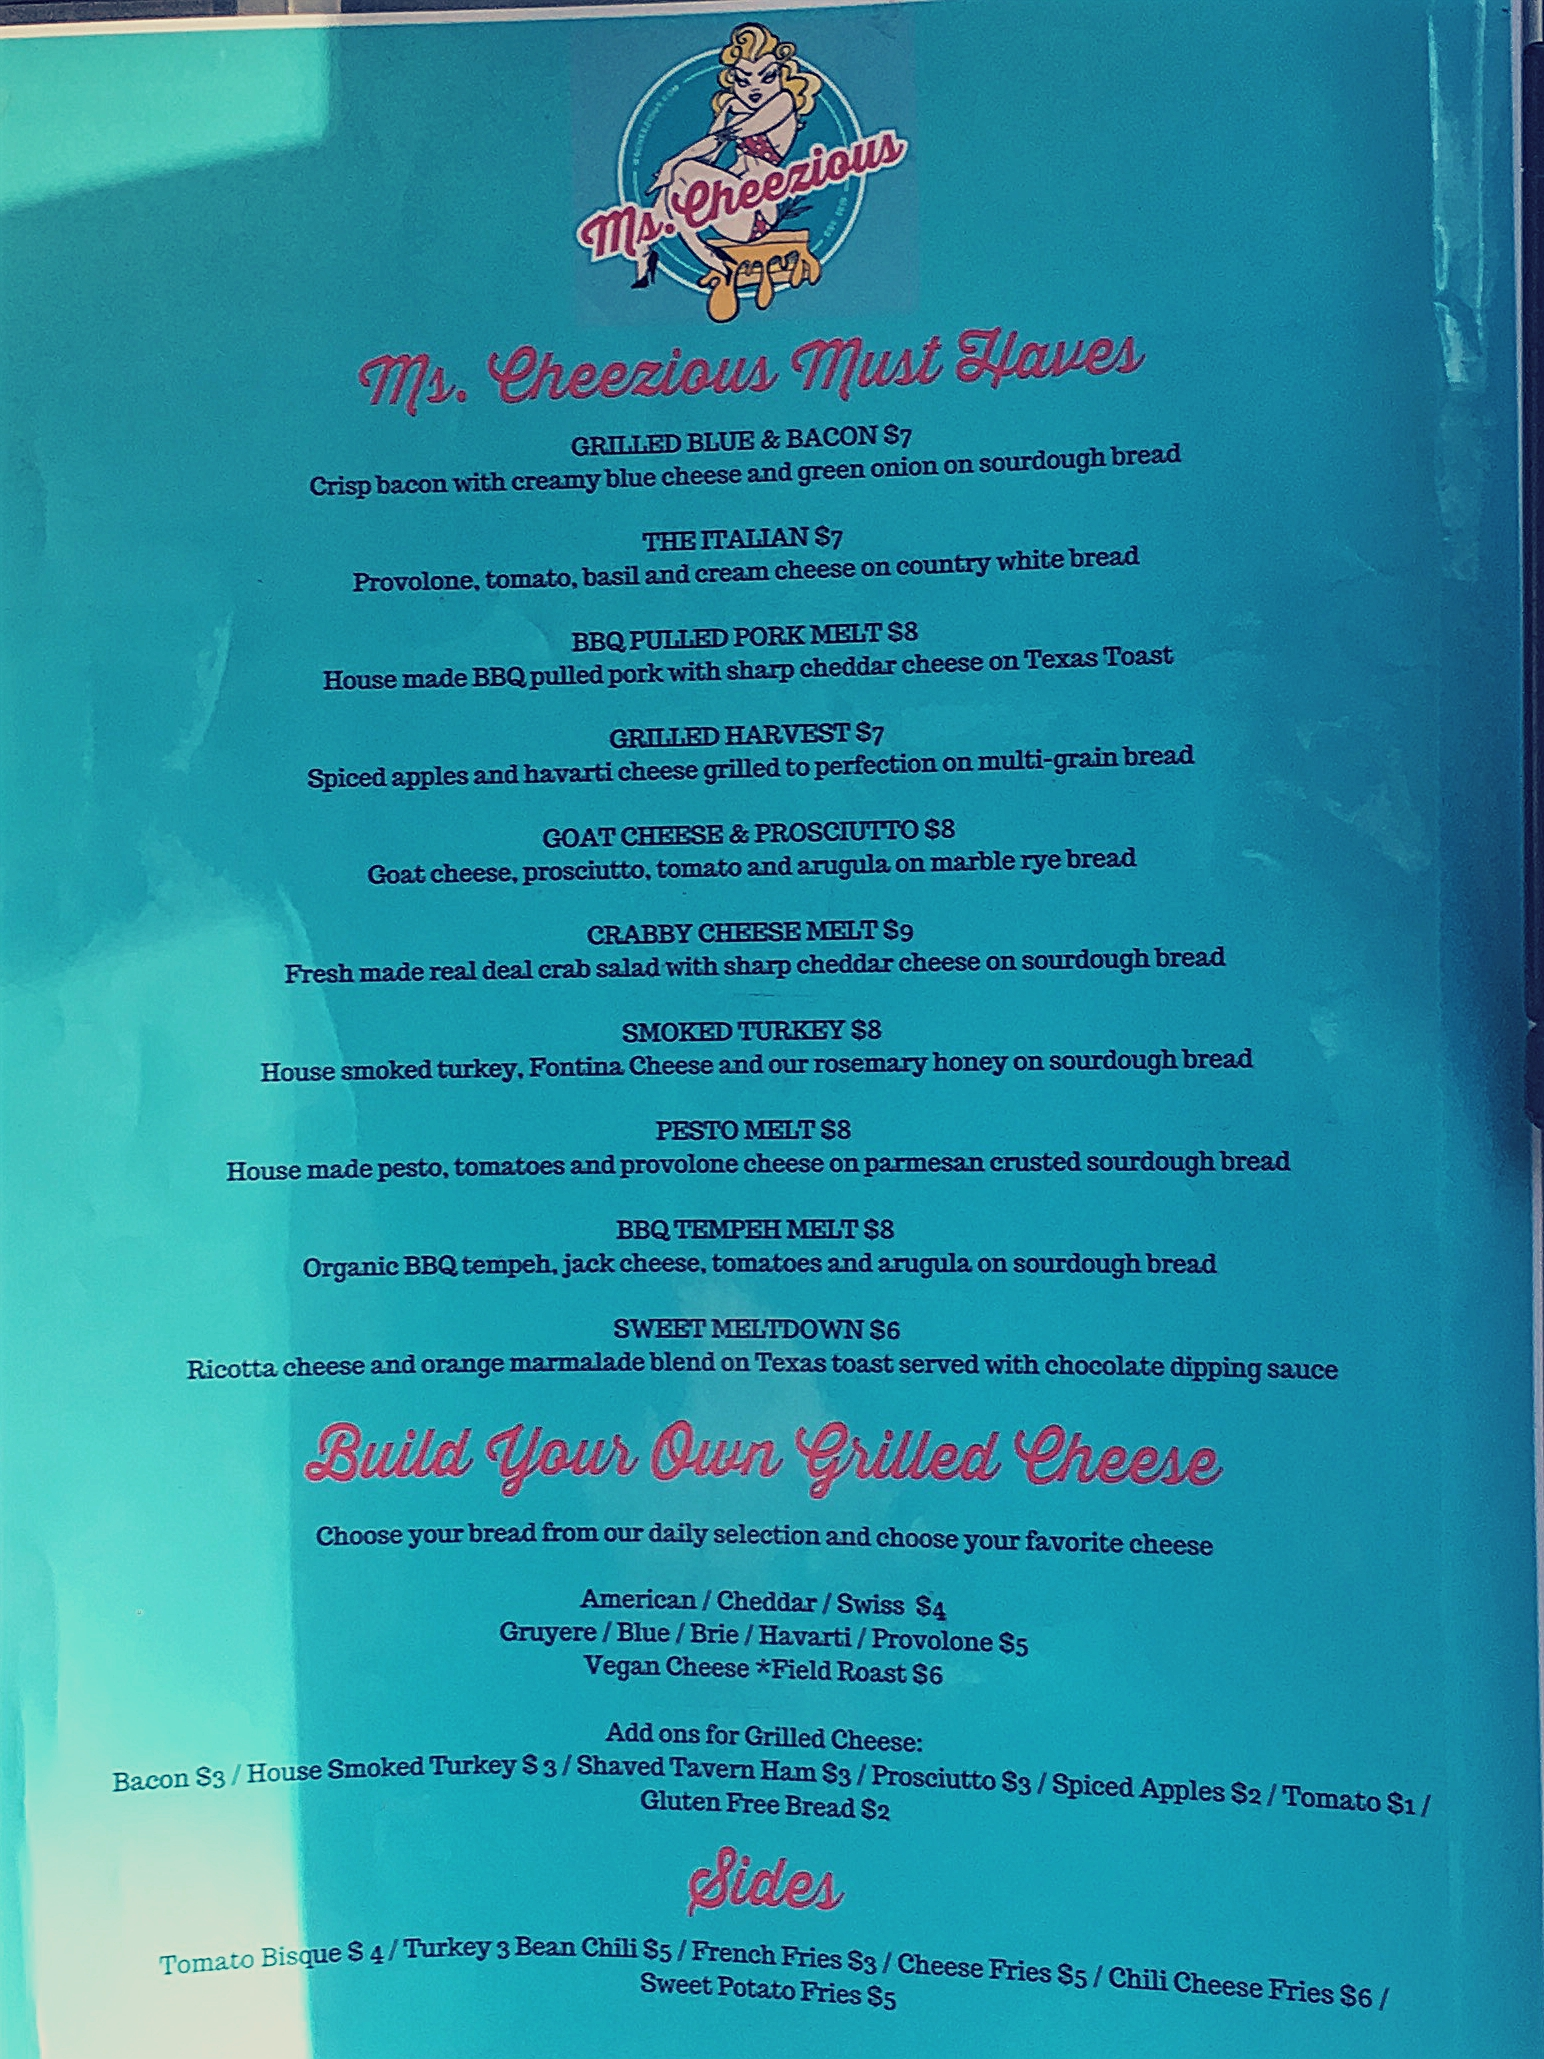 Ms Cheezious Menu and Price